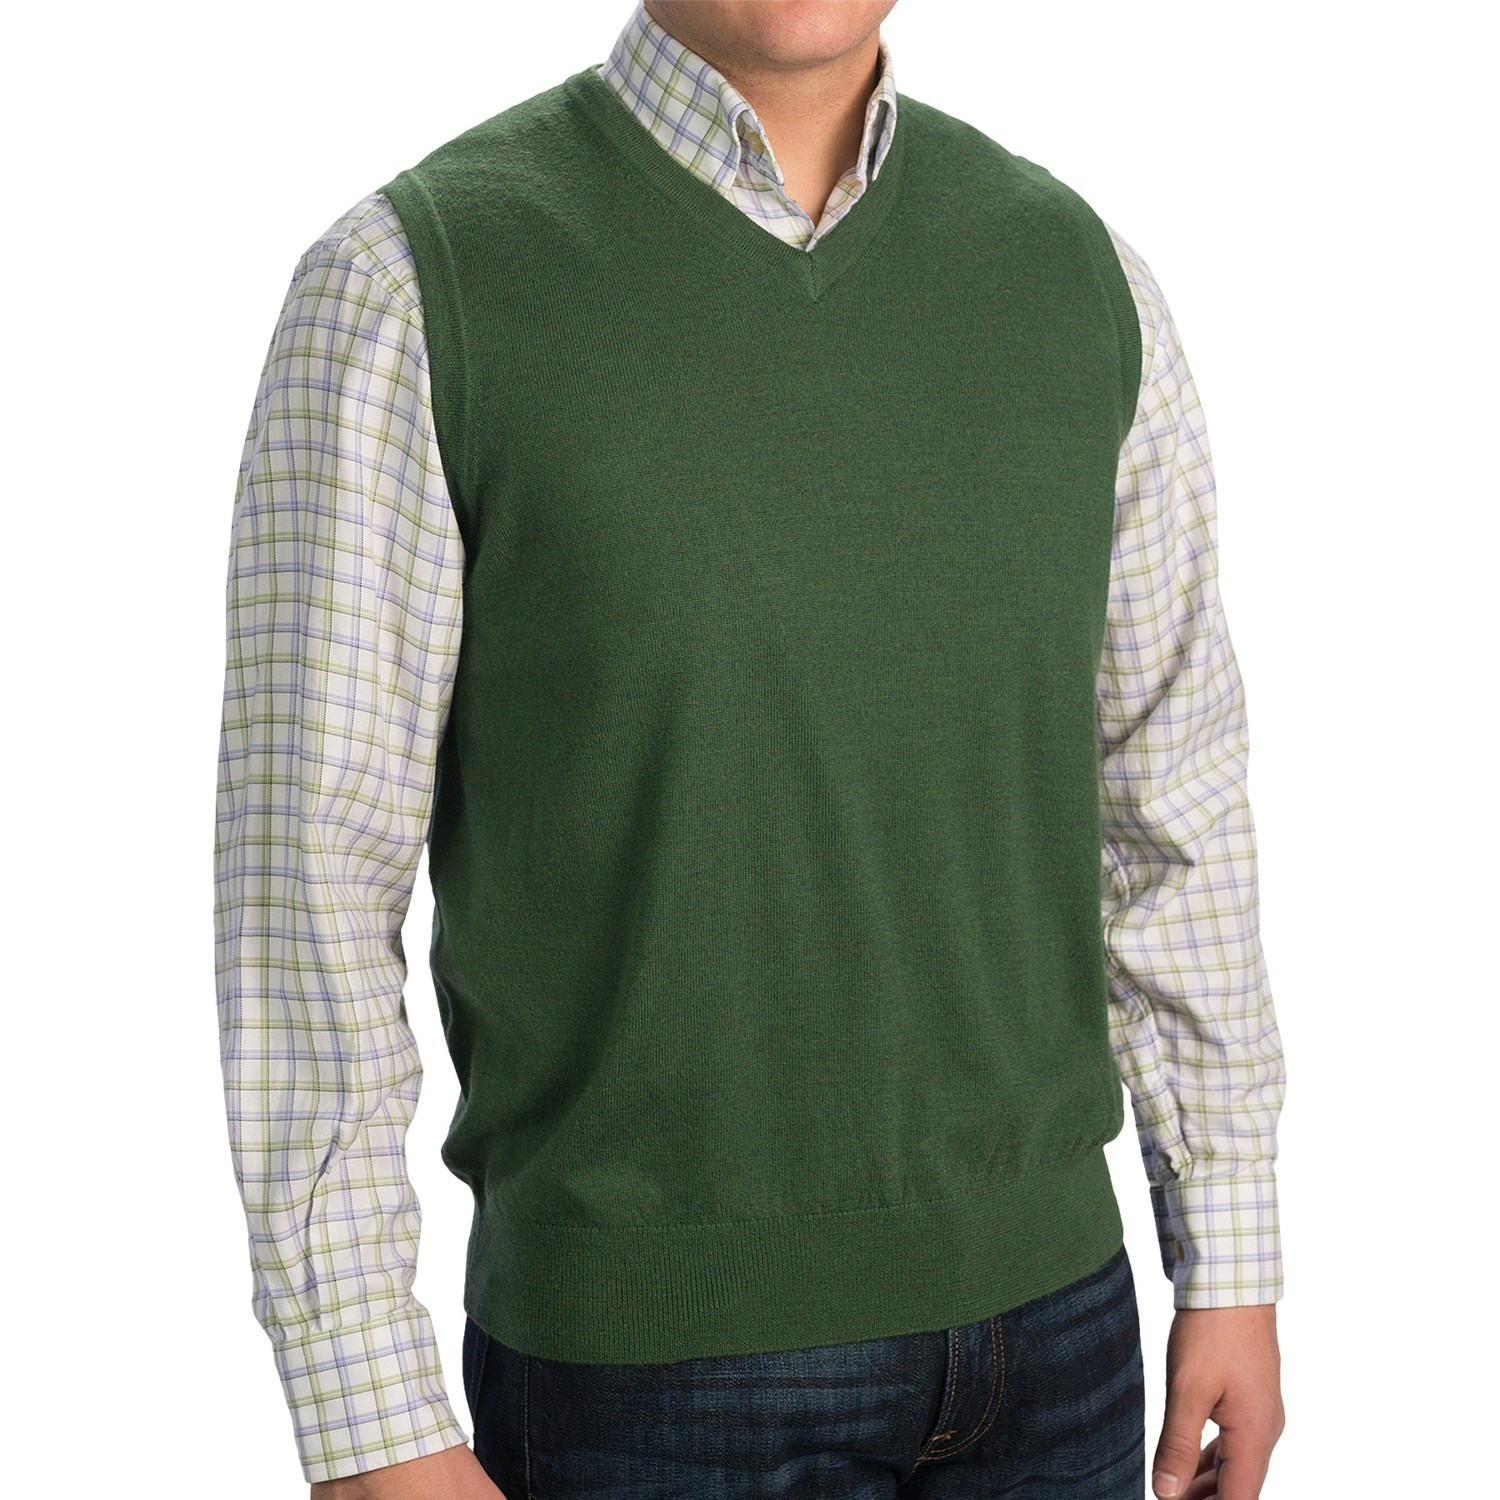 A men's sweater vest is a great way to go either casual or formal with a knit or wool sweater. Find the vest that fits your style at Macy's. Find the vest that fits your style at Macy's. more.